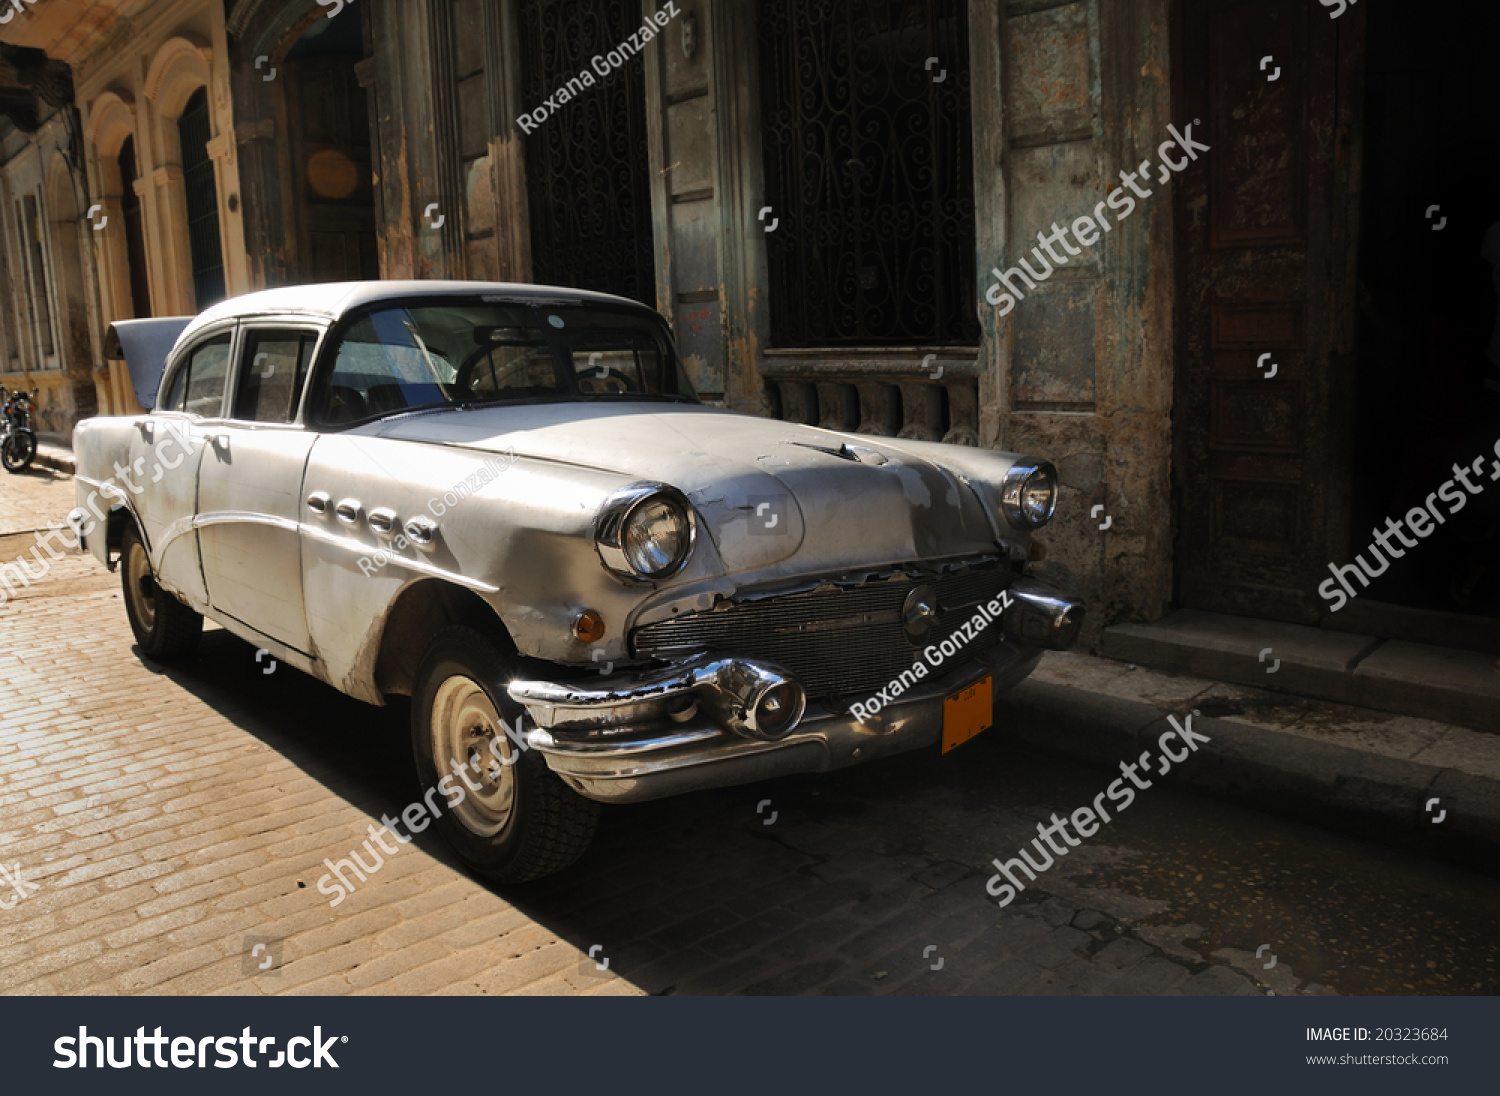 Vintage Classic American Car Streets Old Stock Photo (Royalty Free ...